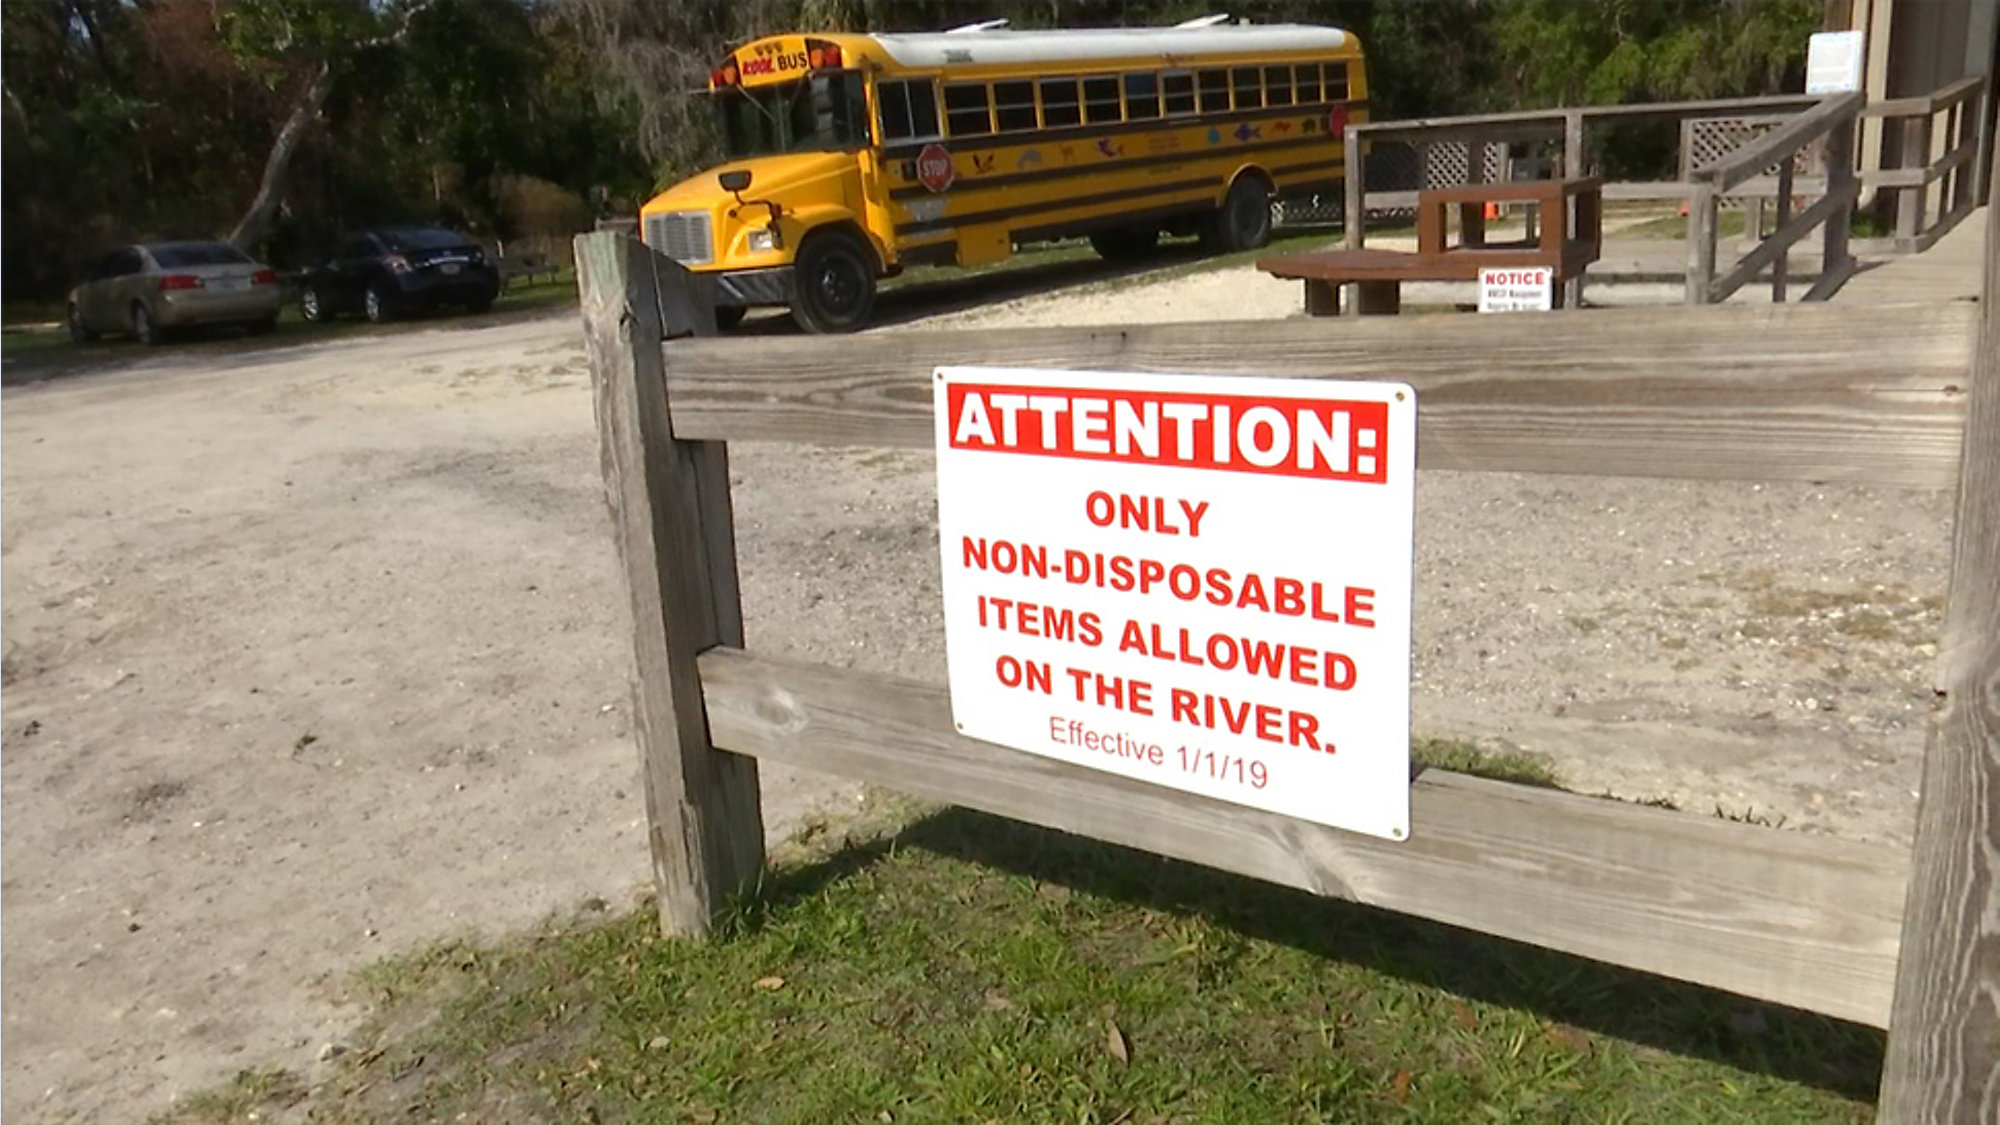 New Non-Disposable Policy Implemented at Weeki Wachee